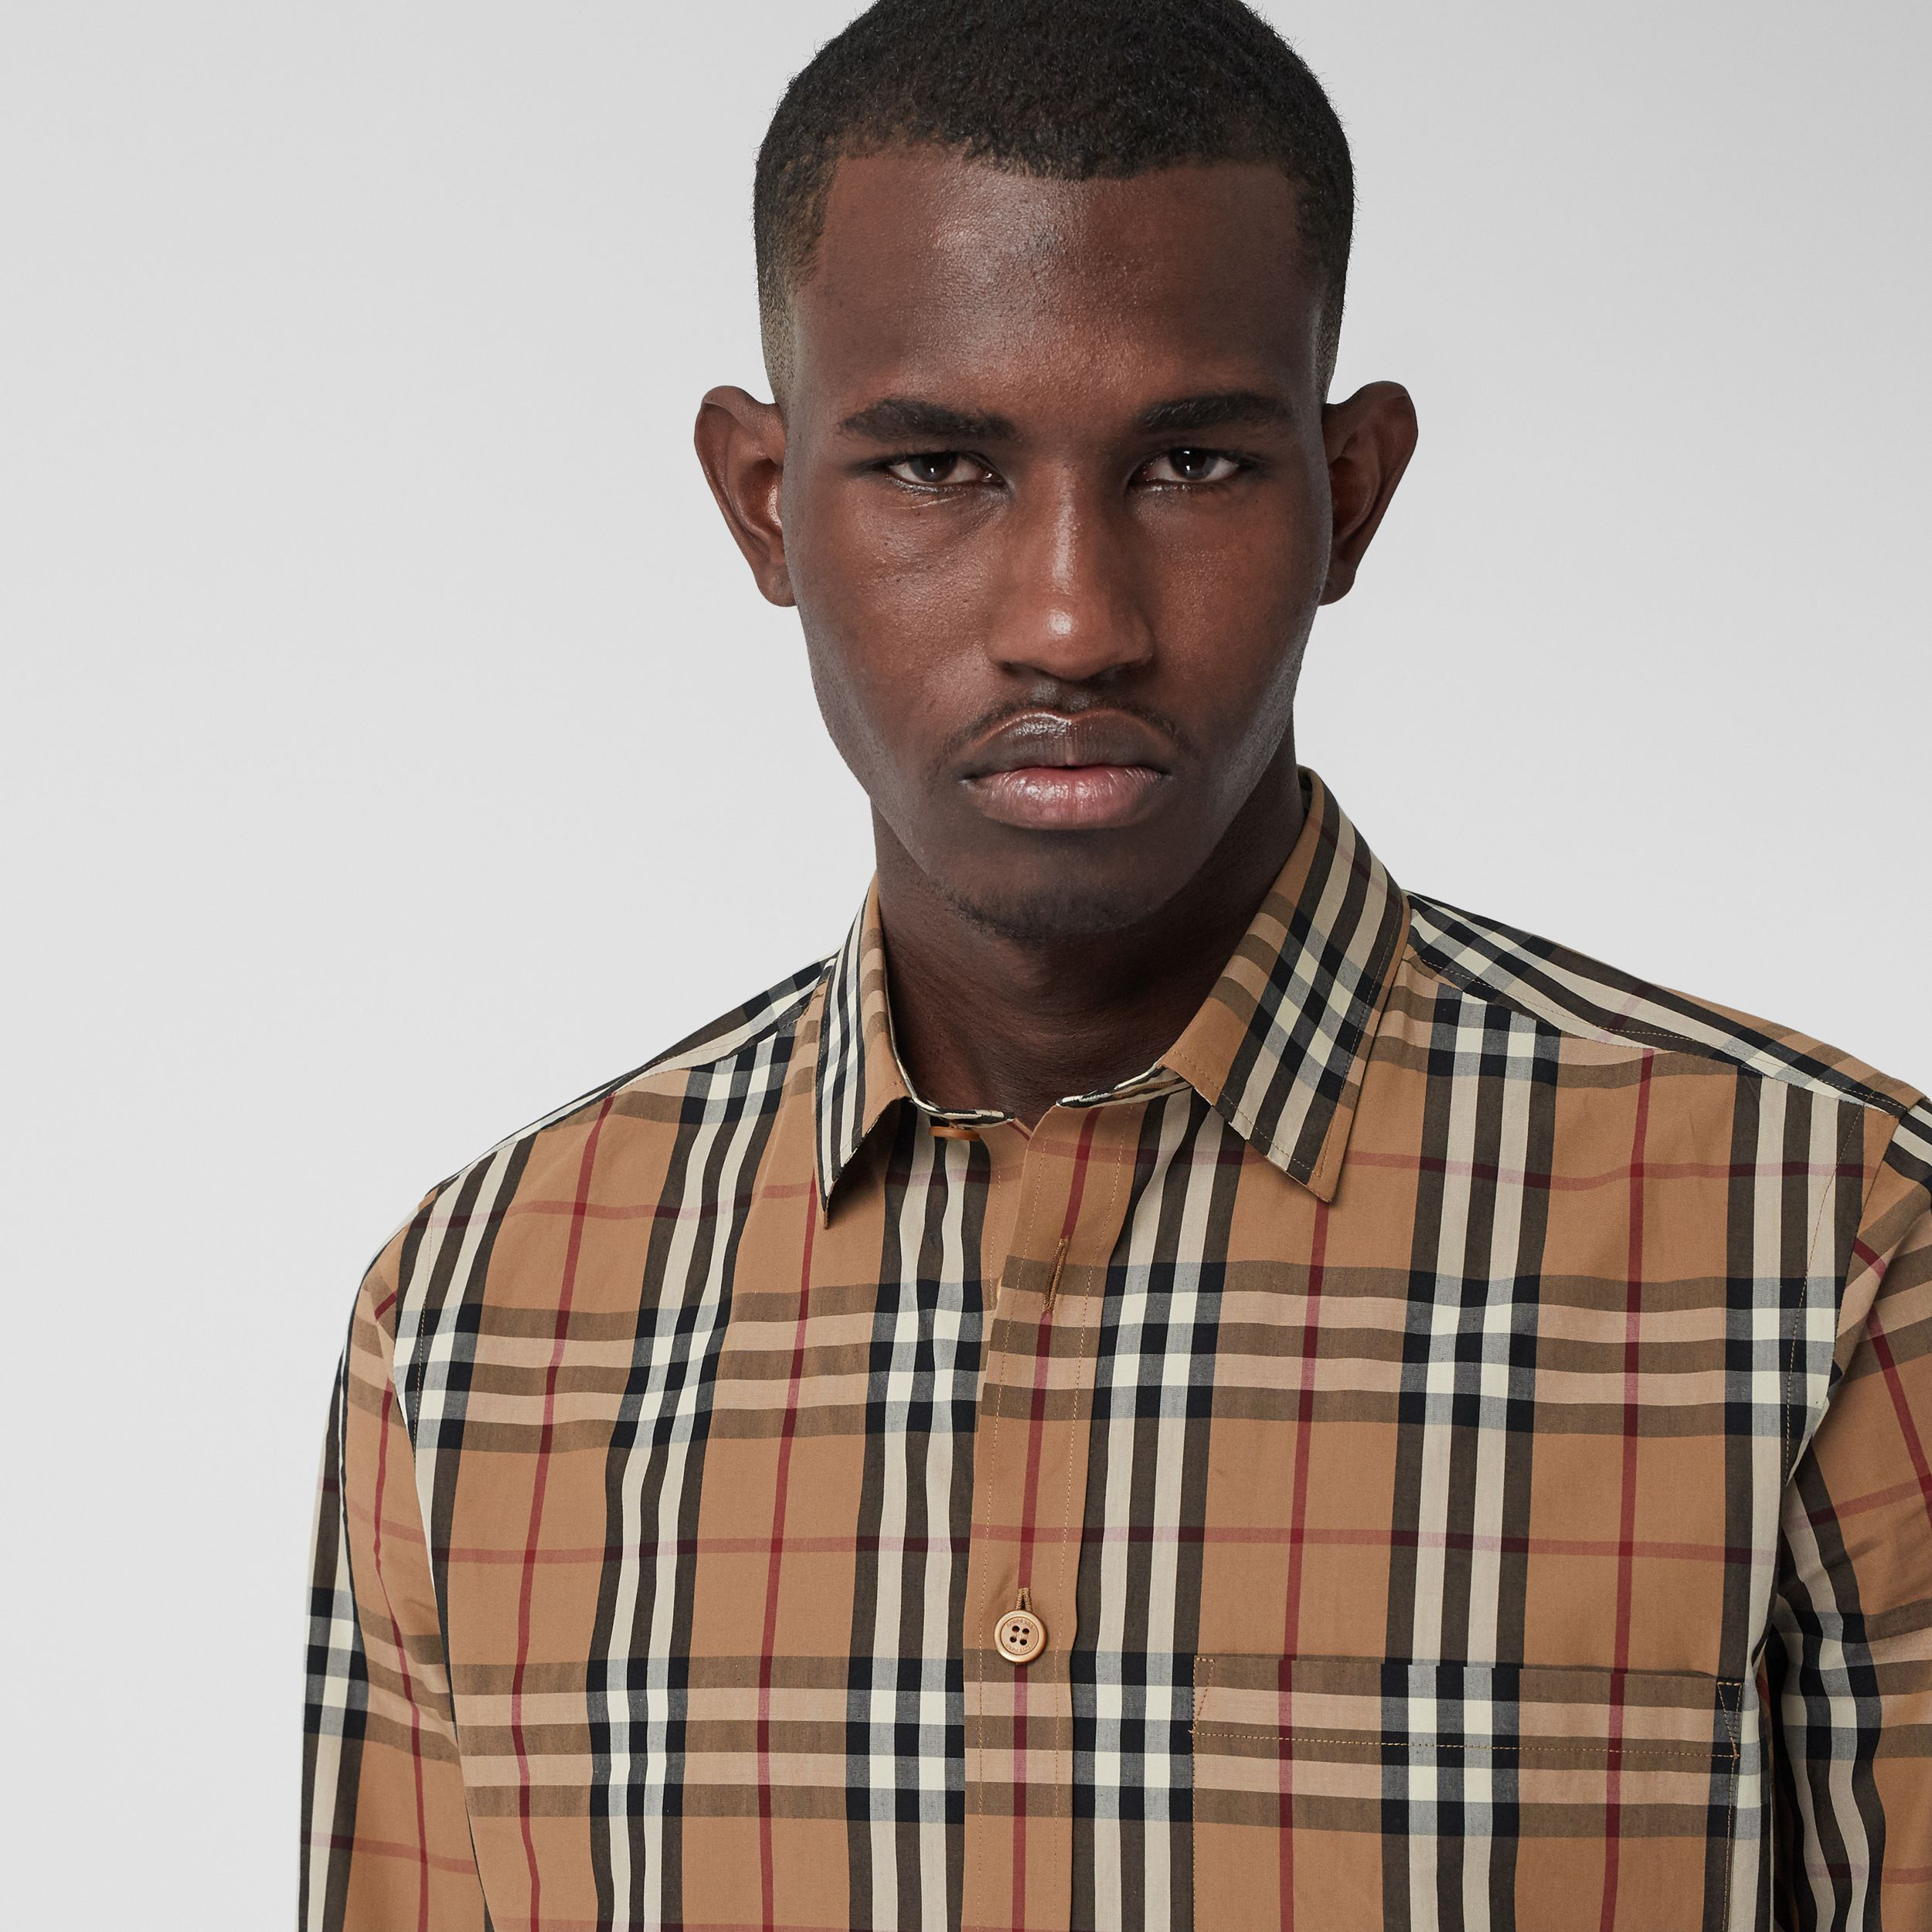 Vintage Check Cotton Poplin Shirt in Birch Brown | Burberry - 2